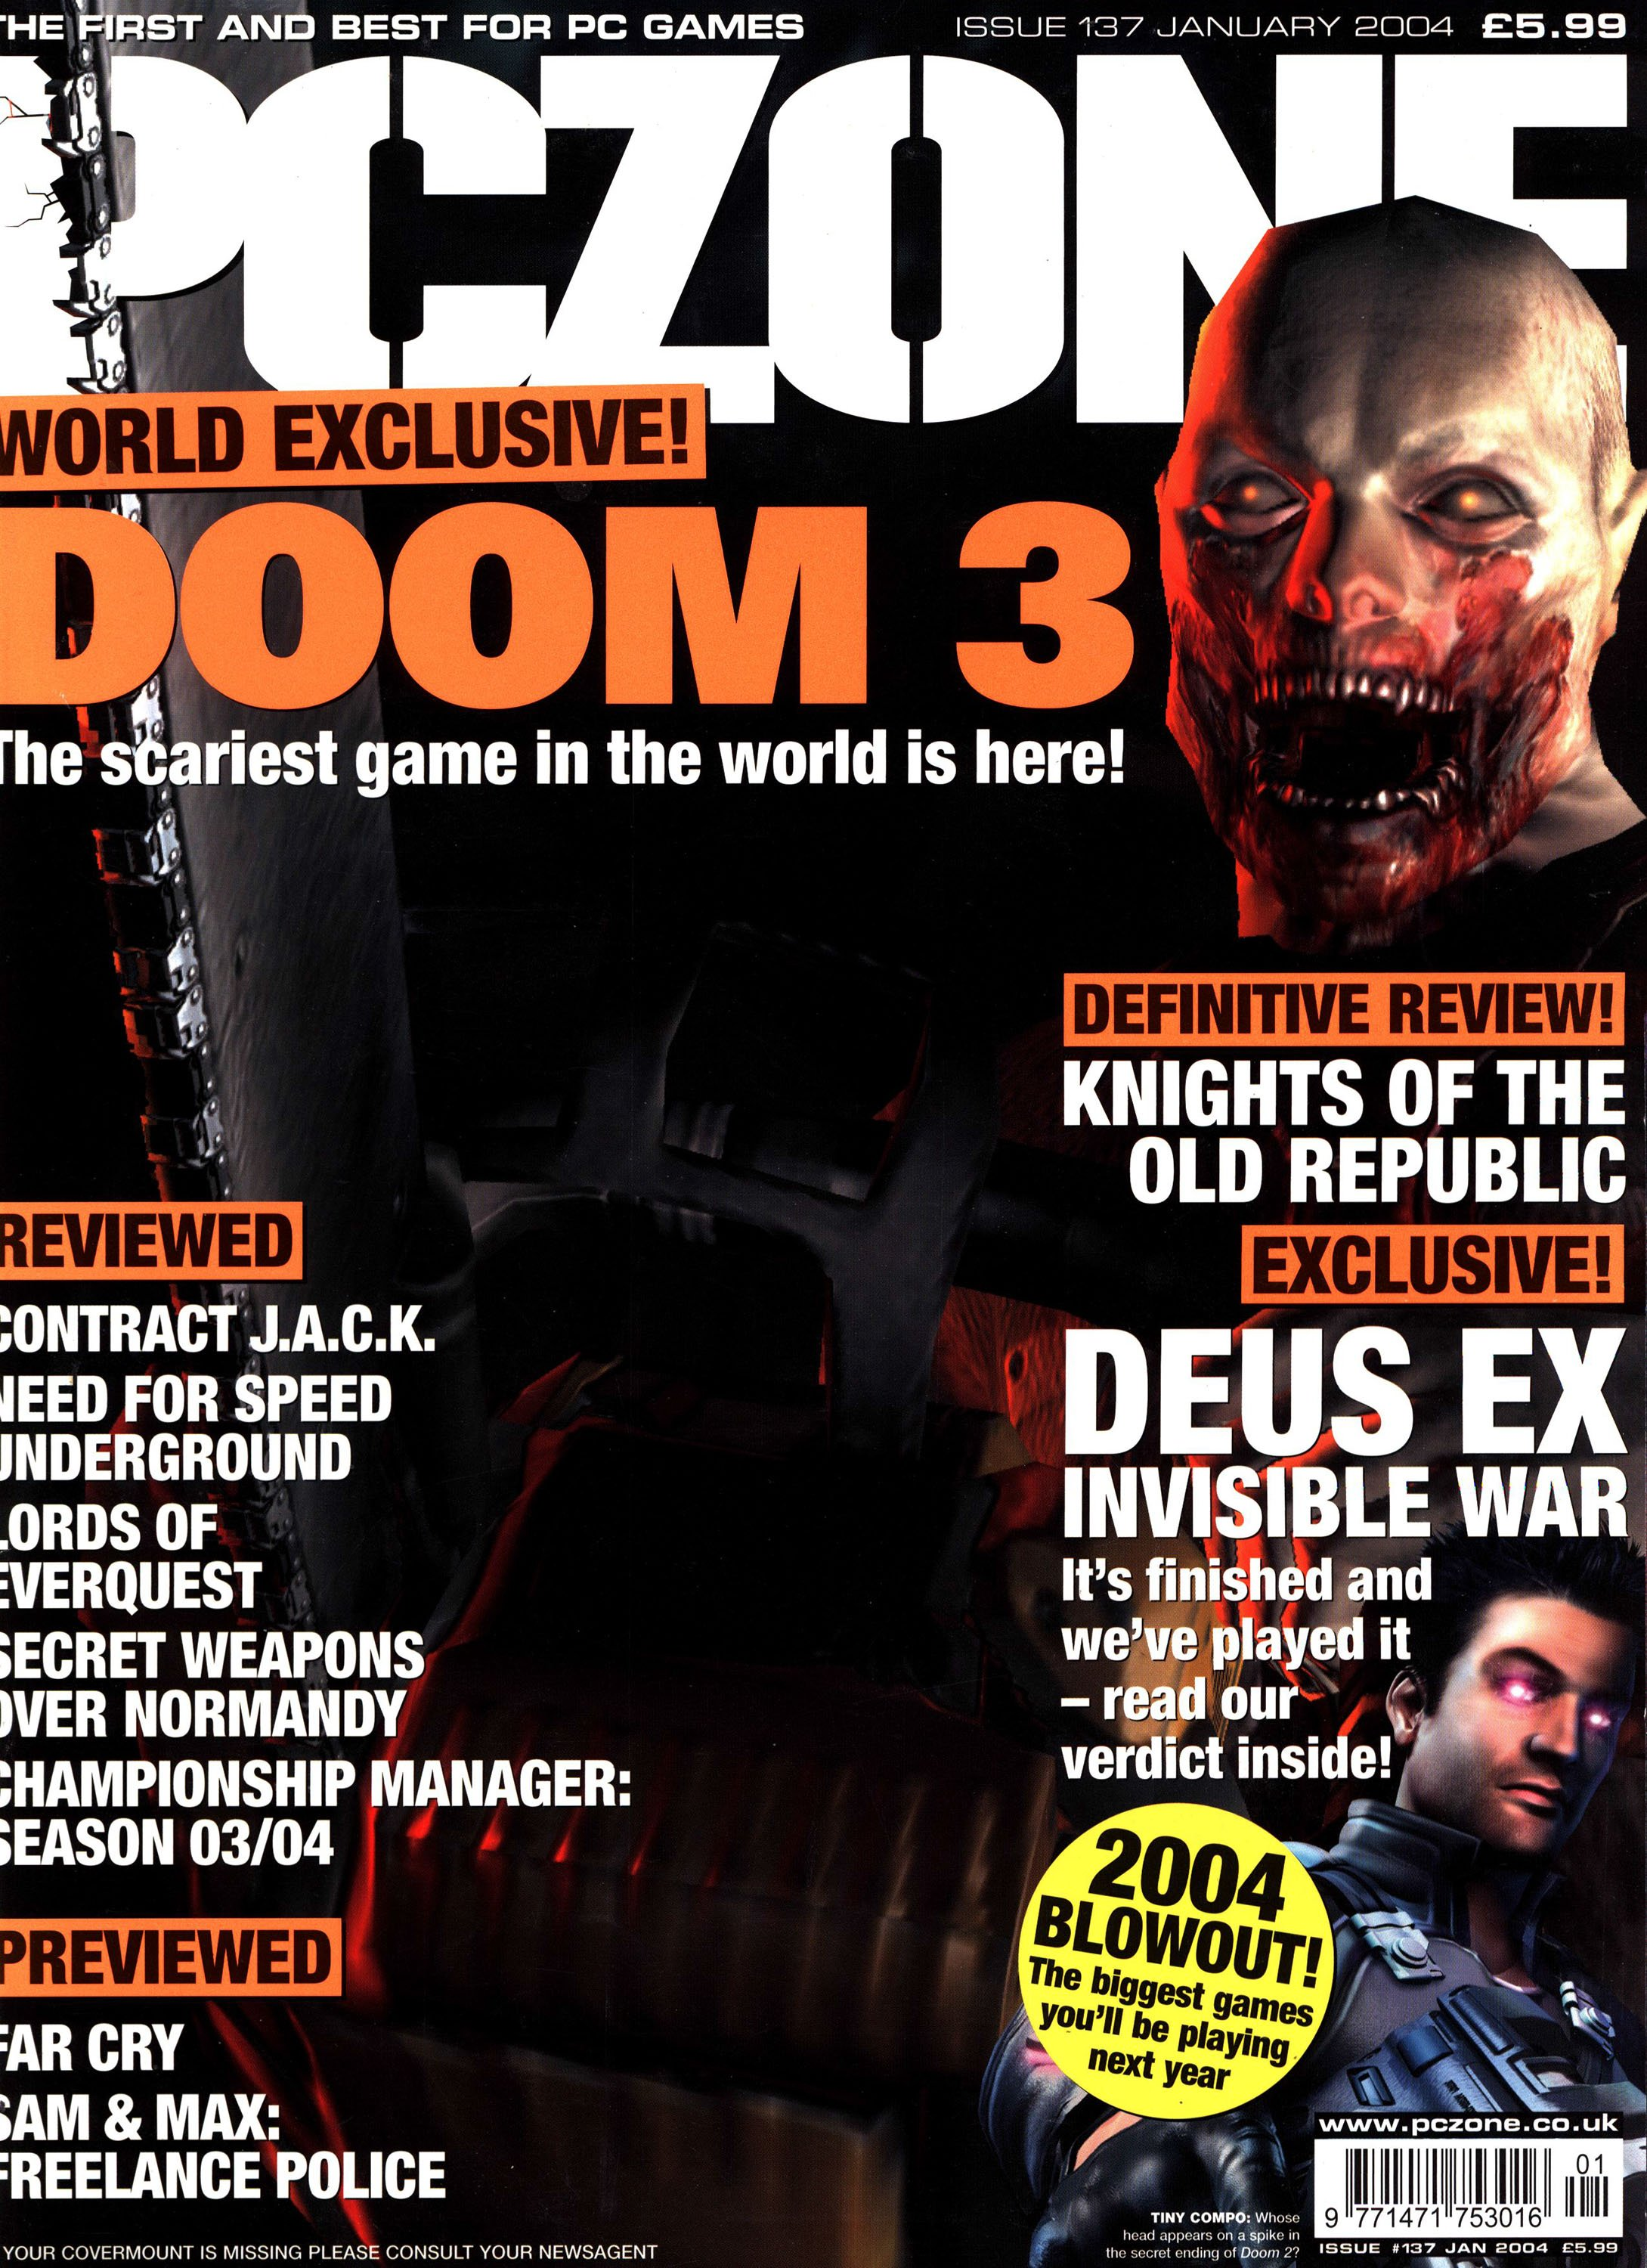 PC Zone Issue 137 (January 2004)